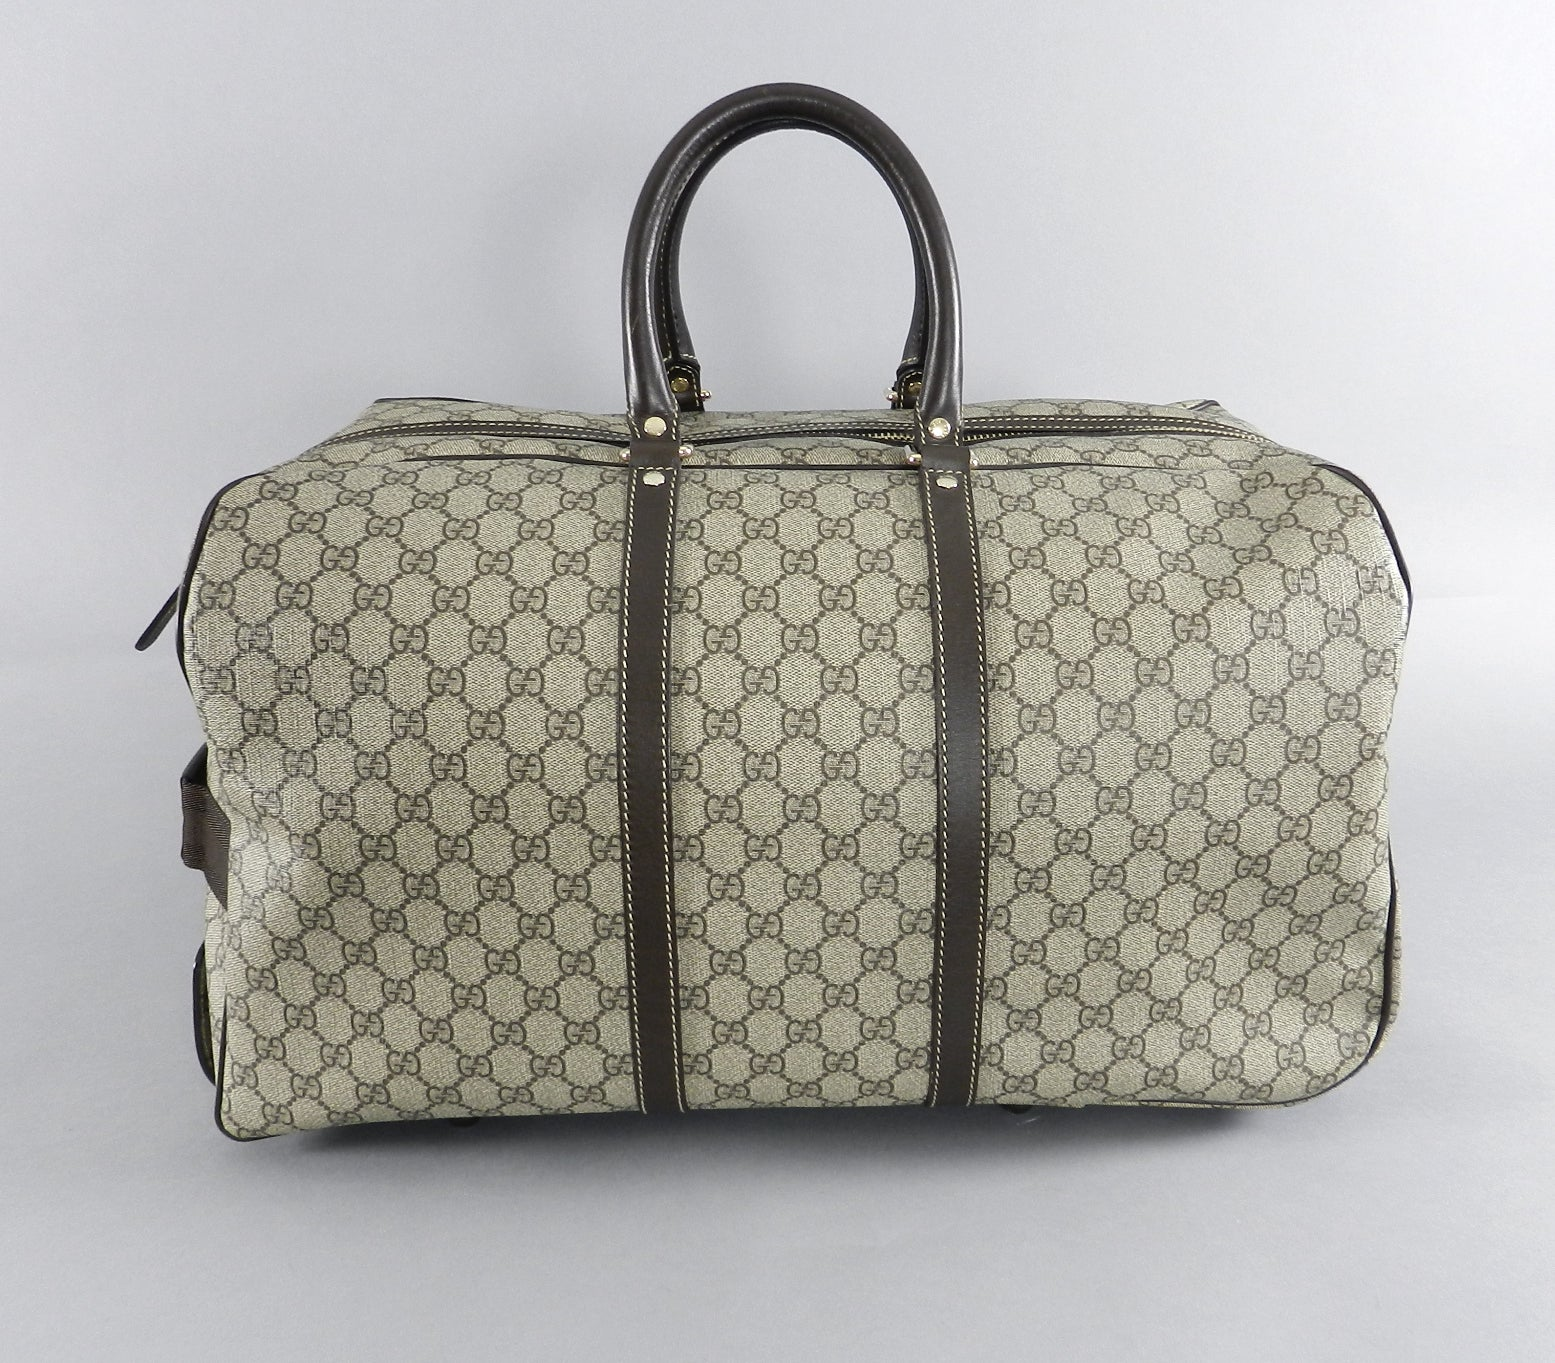 a39e609419ec3b Gucci GG monogram Brown Canvas Duffle Rolling Luggage Carry on Travel Bag  at 1stdibs